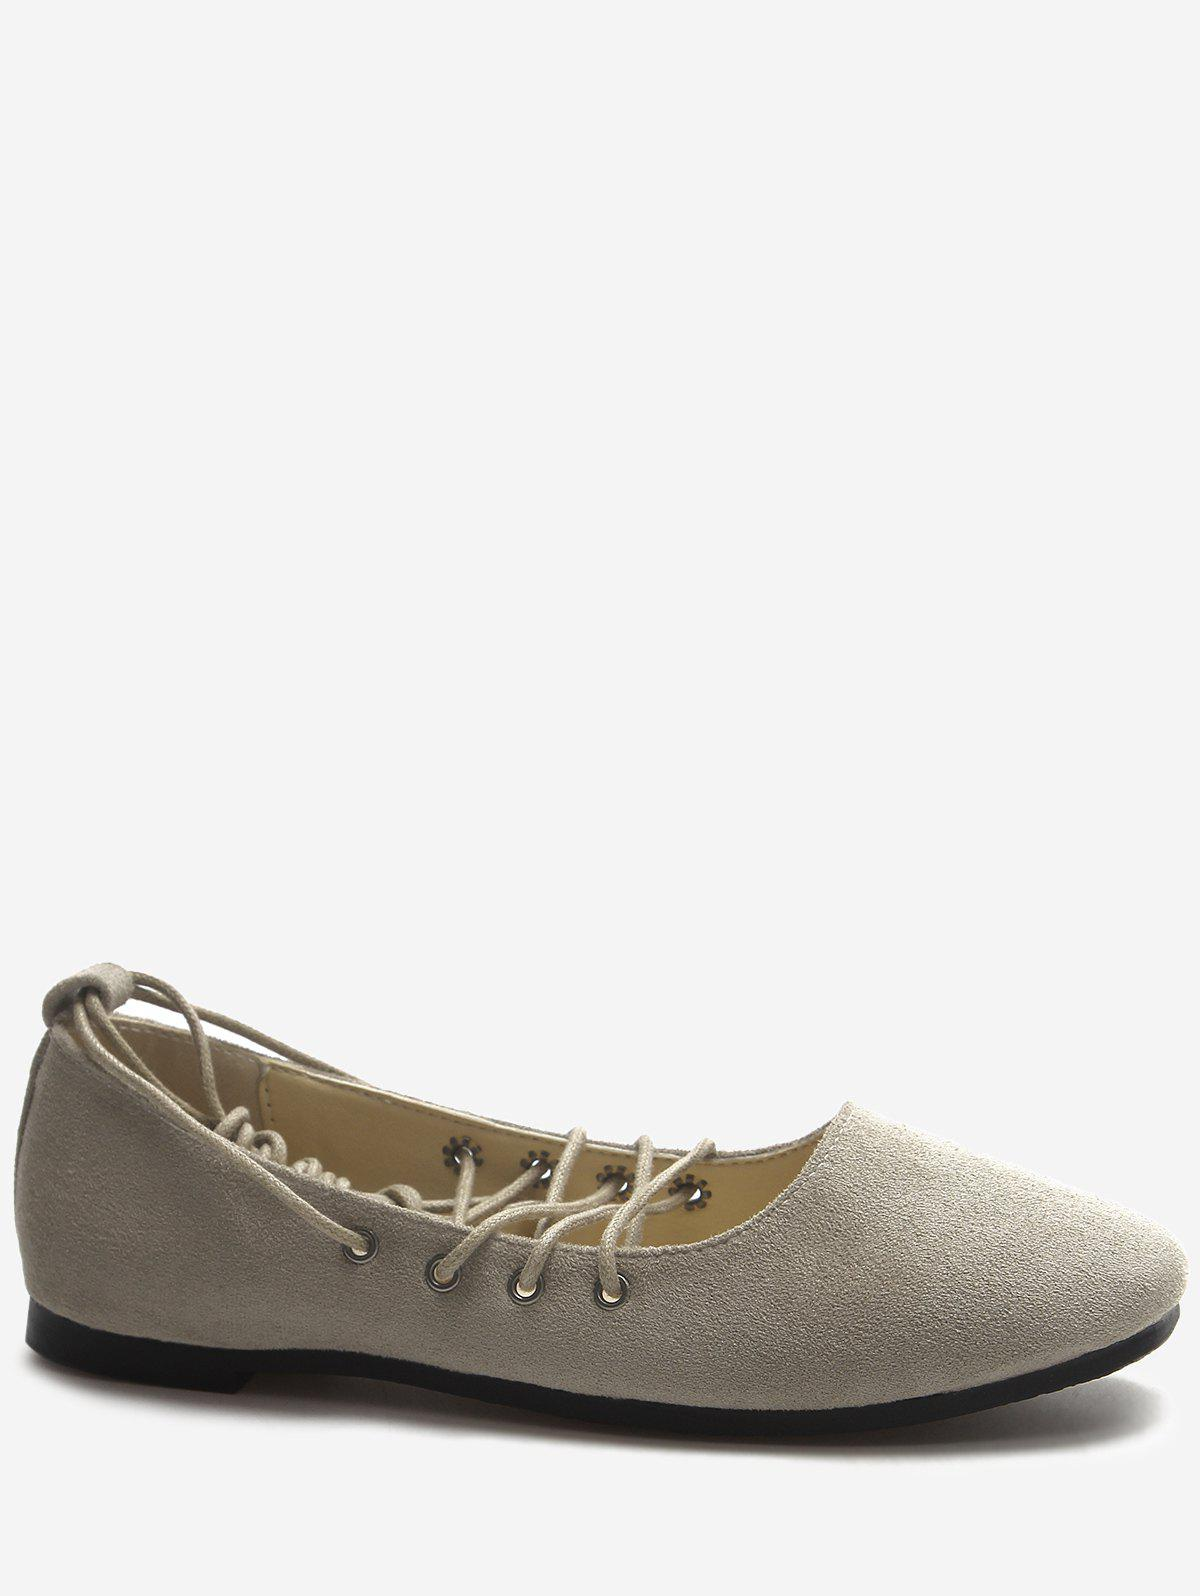 Crisscross Casual Lace Up Ballerina Flats - LIGHT GRAY 38